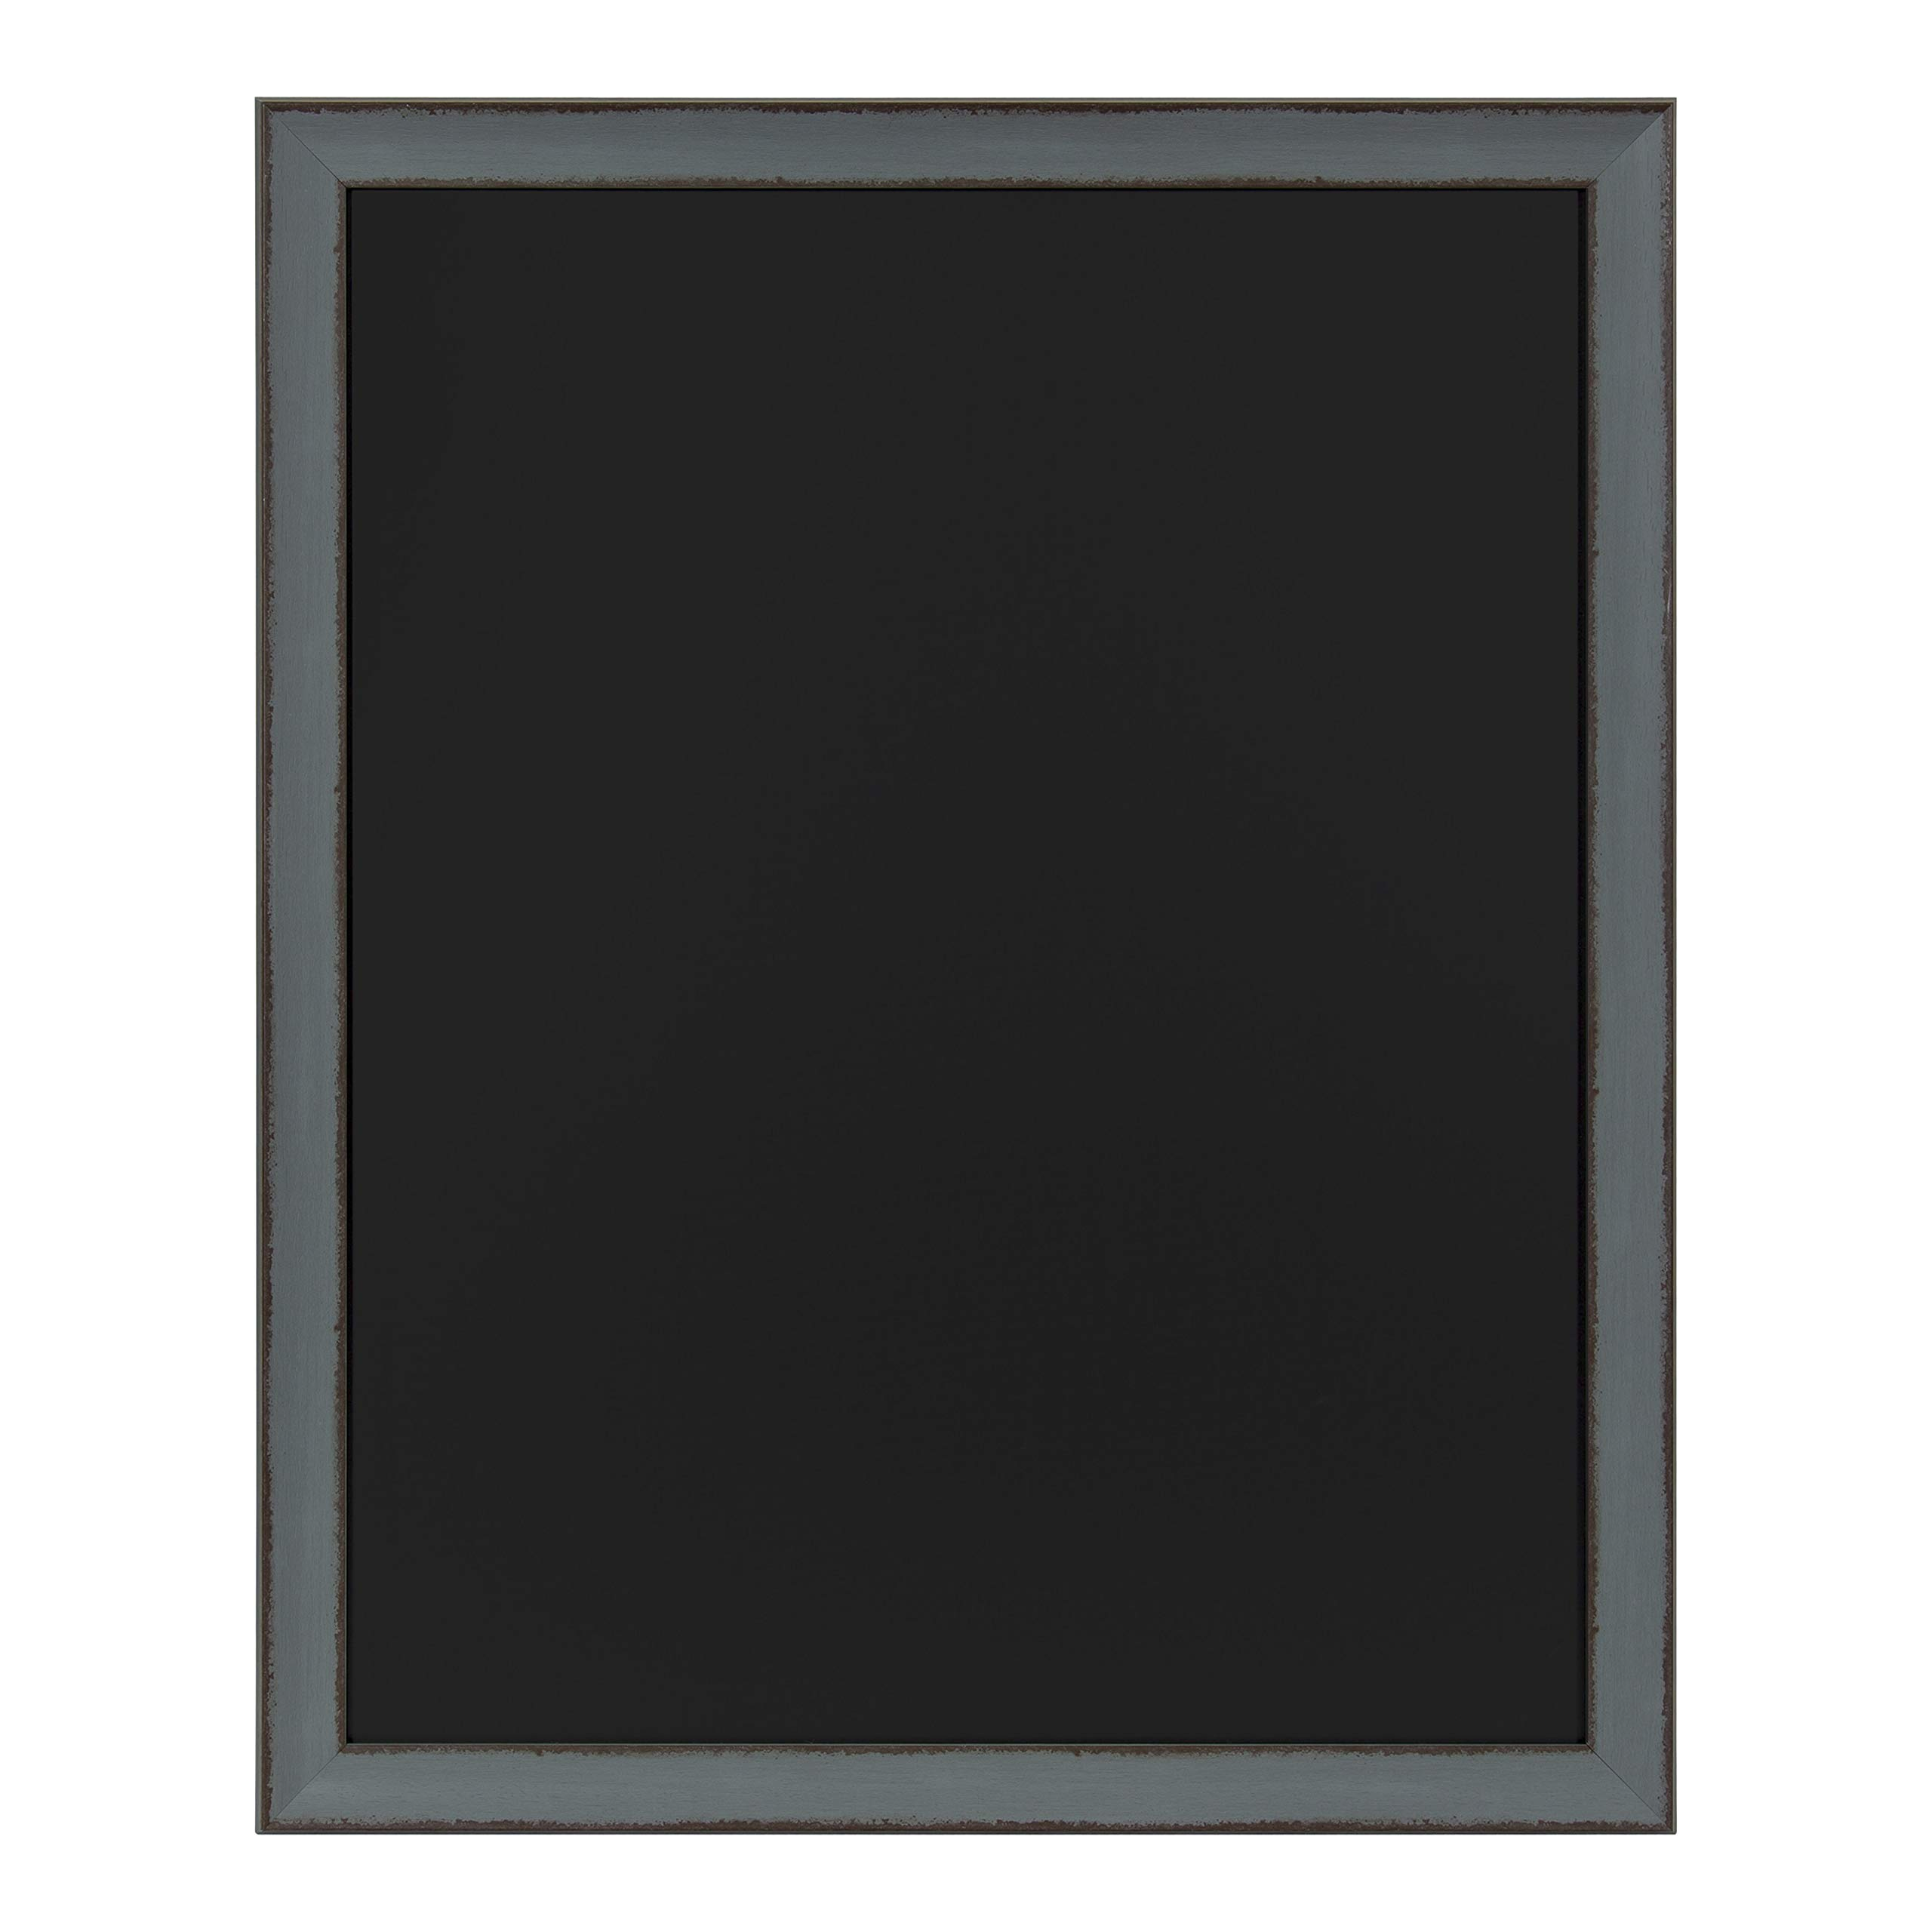 Kate and Laurel Kenwick Framed Magnetic Chalkboard, 27x33, Gray Green by Kate and Laurel